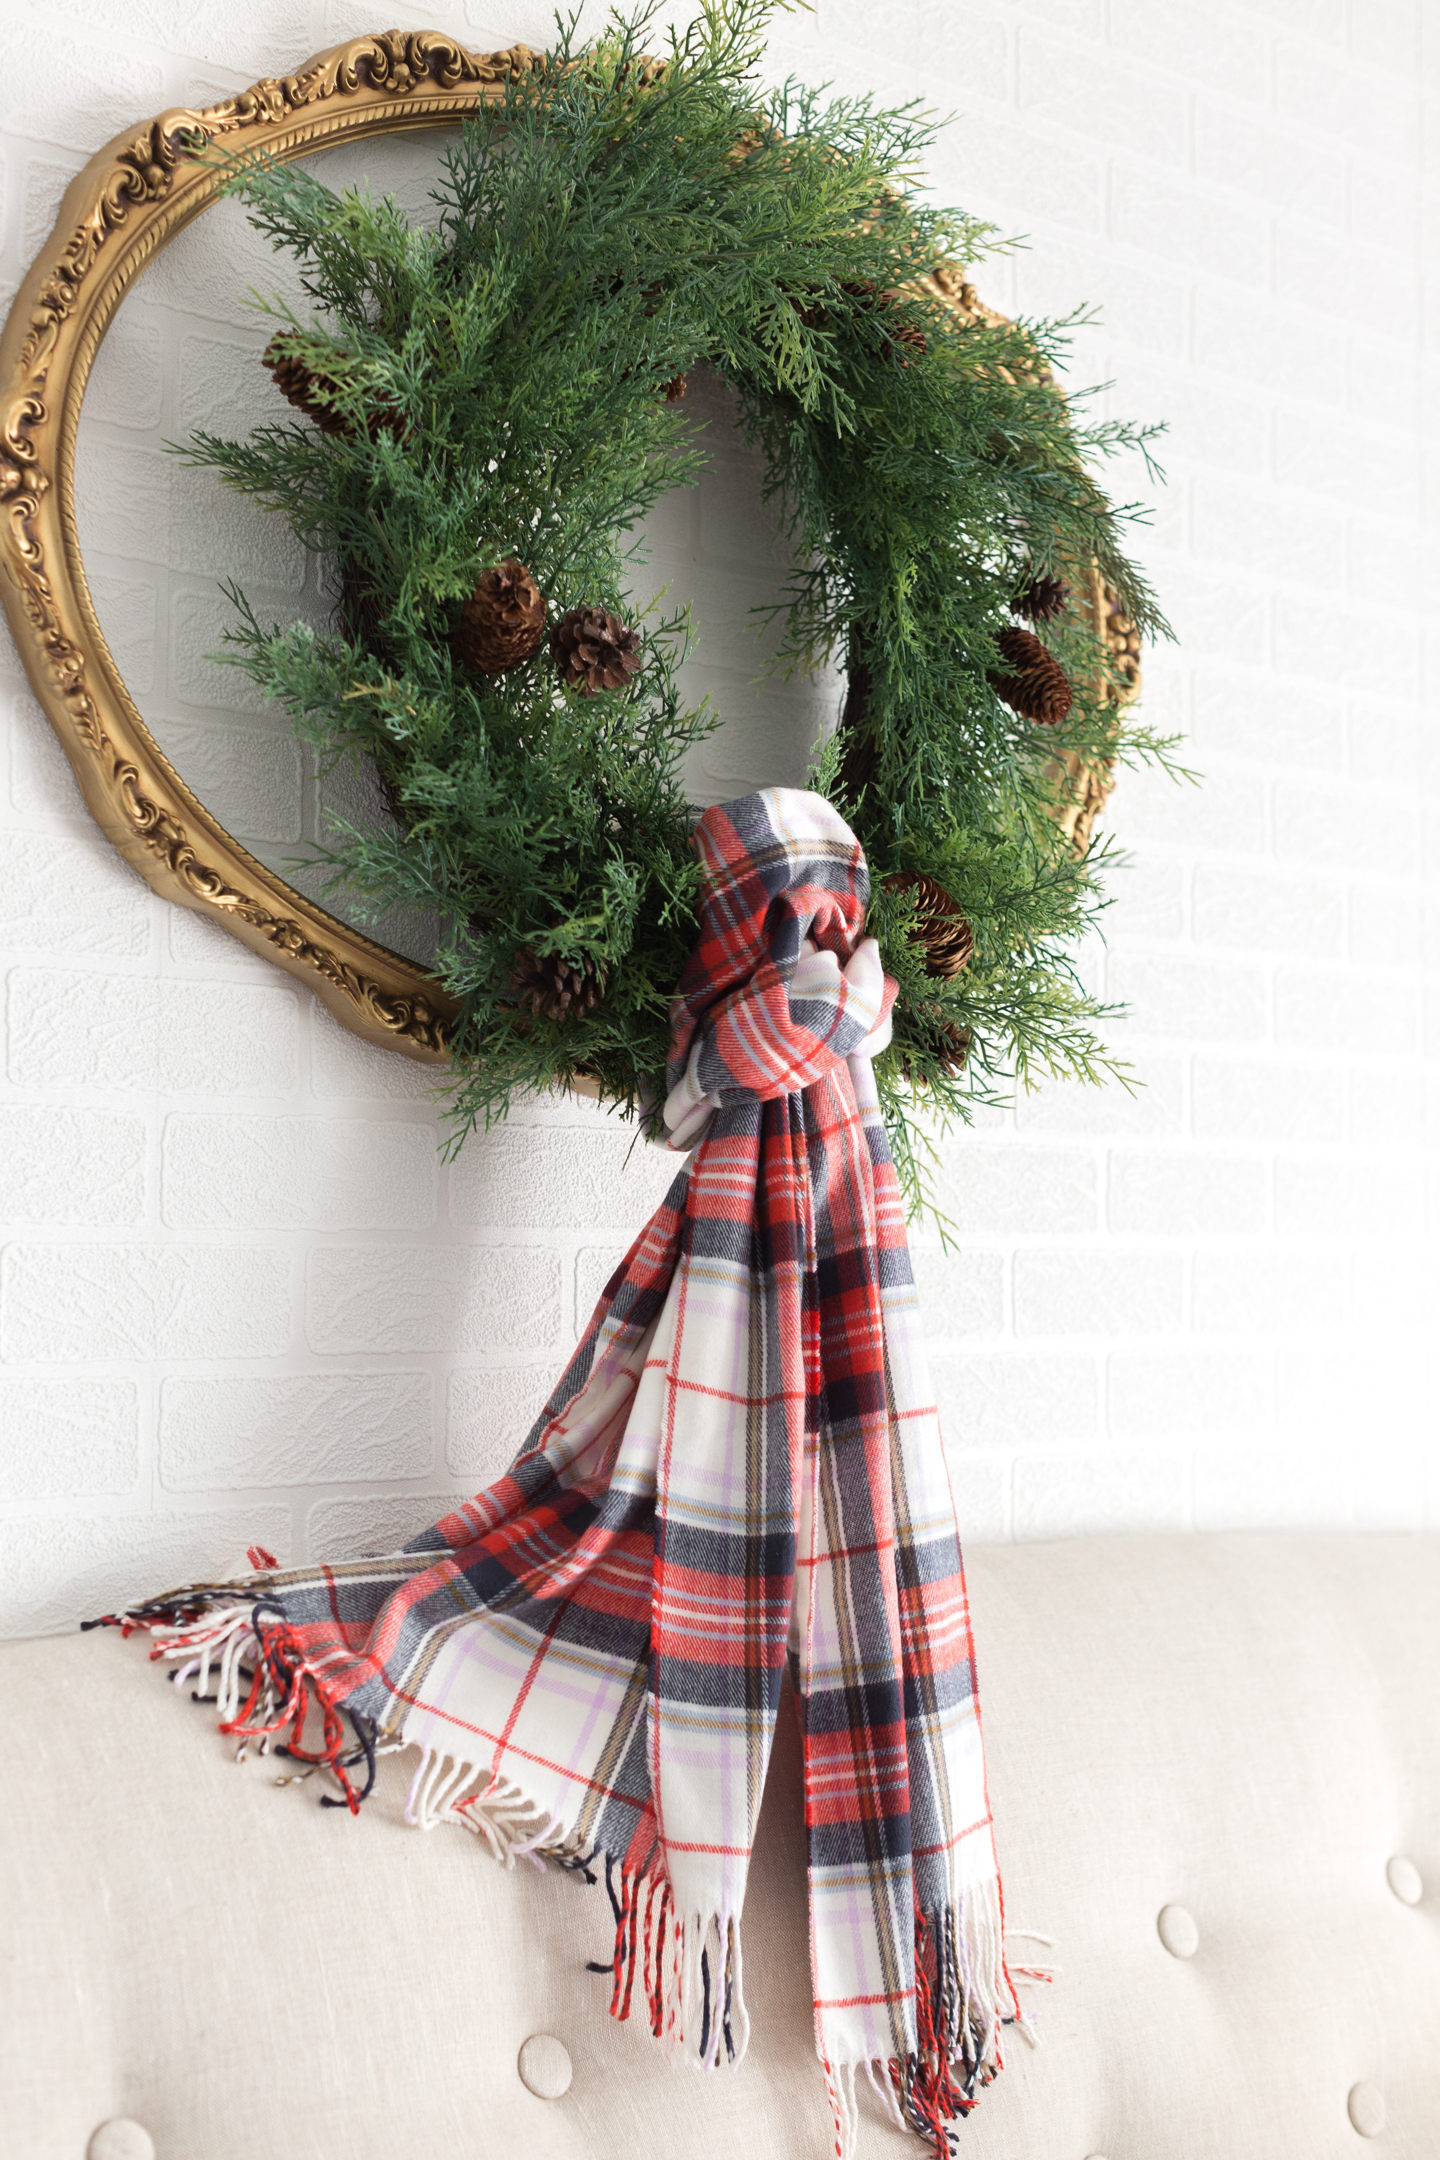 plaidchristmasbedroom_-4